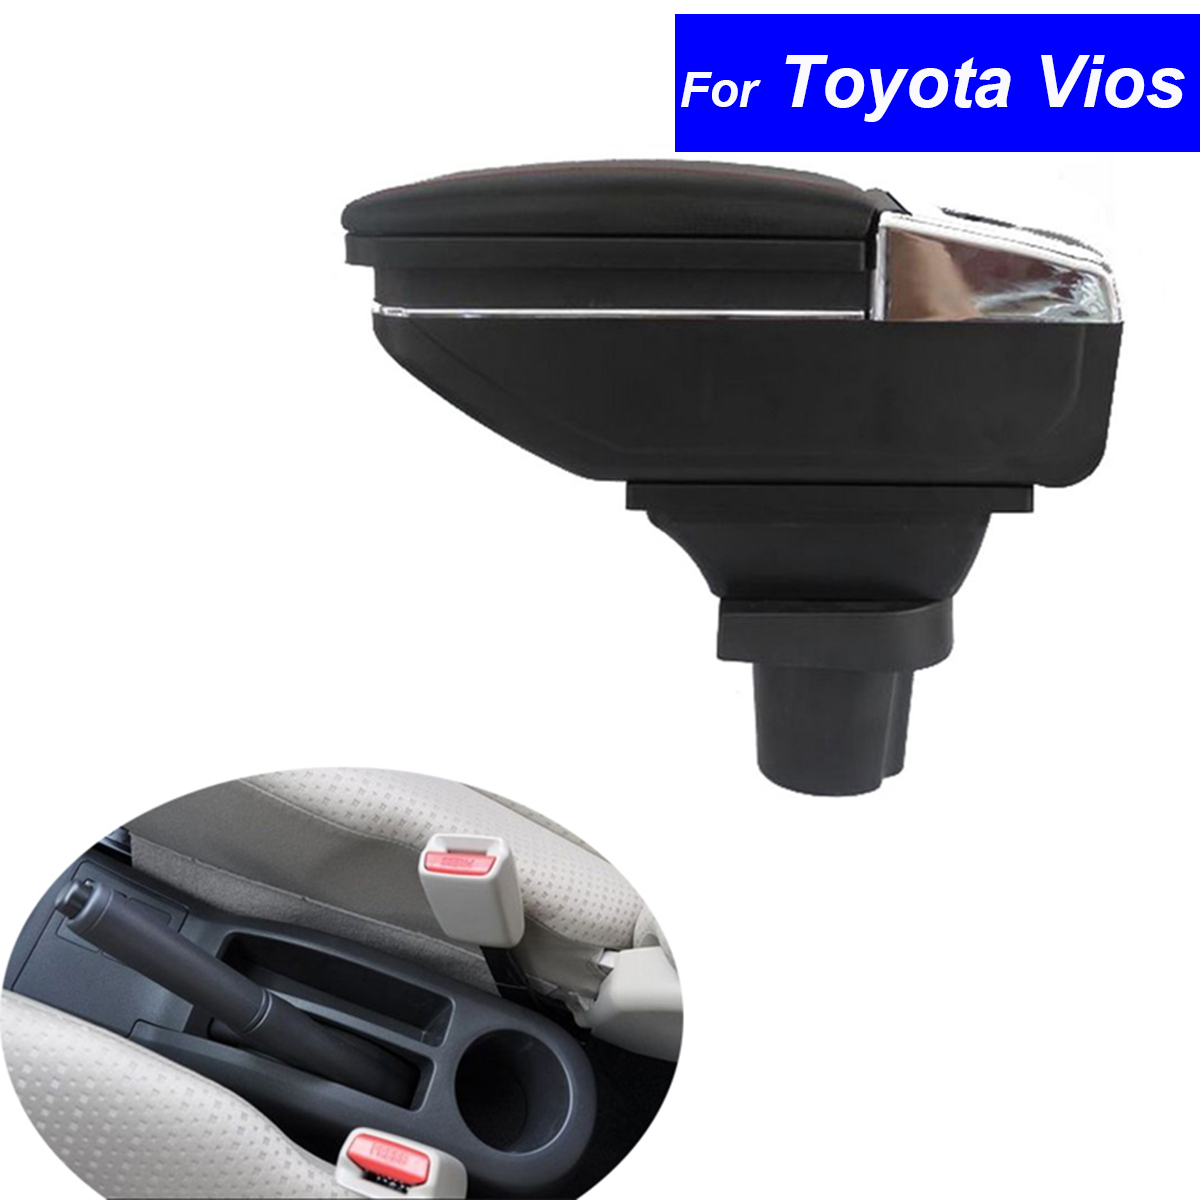 ФОТО Leather Car Center Console Armrest Box for Toyota Vios 2002 2003 2004 2005 2006 2007 2008 Armrests Free Shipping